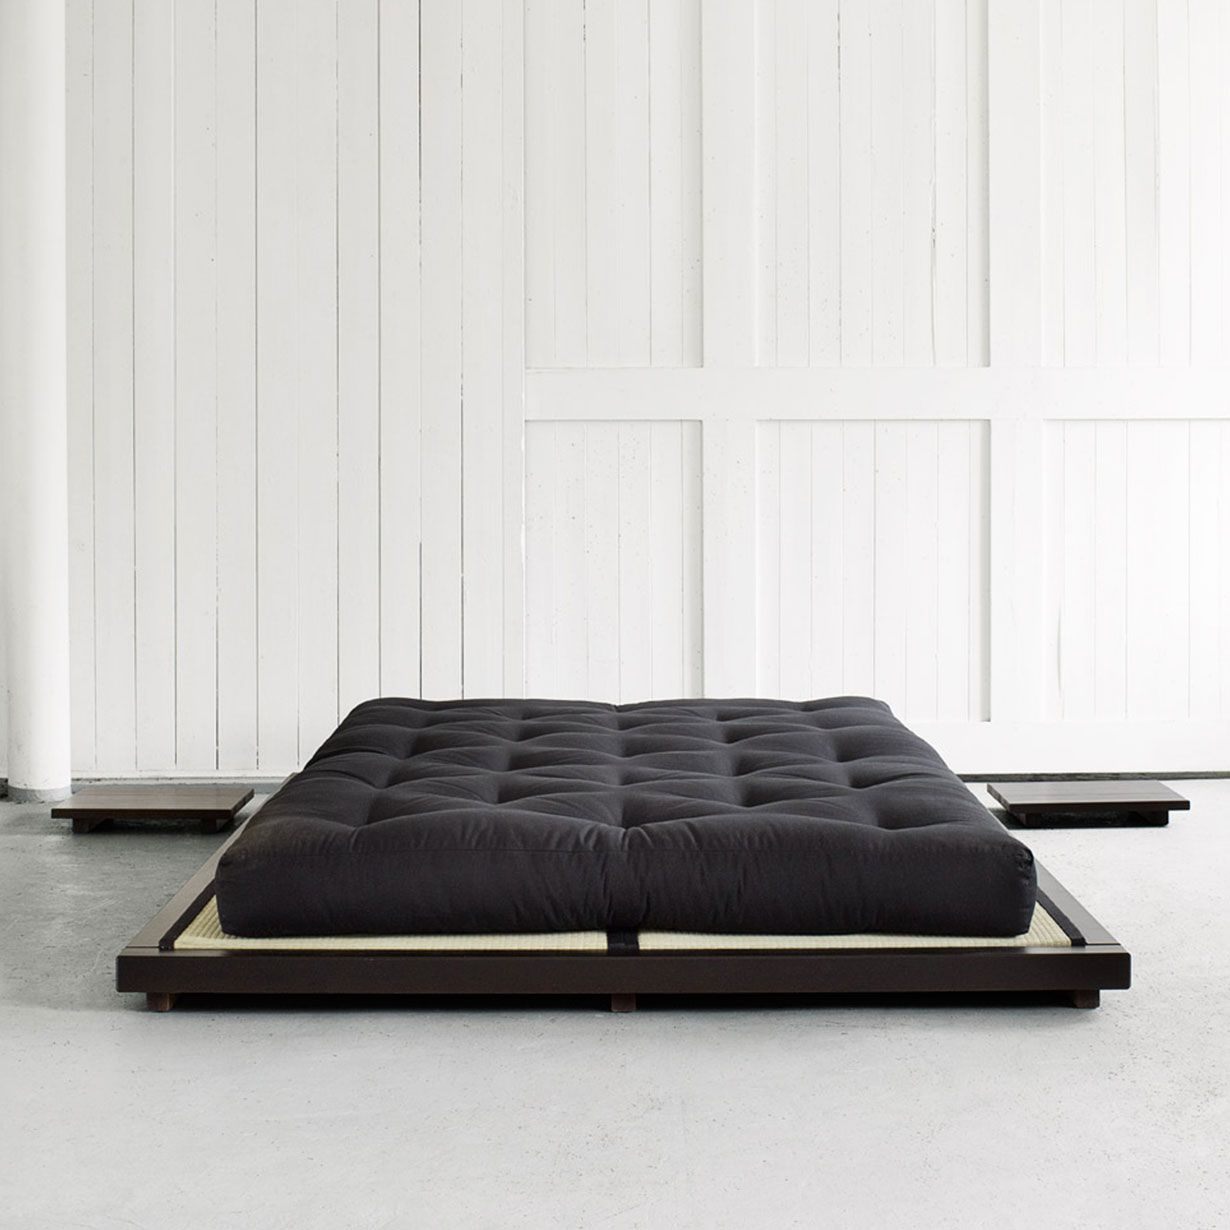 The Karup Dock Bed Is A Simplistic Model One Of Our Favorite And Best Selling Futon Bed Futon Mattress Futon Bed Frames